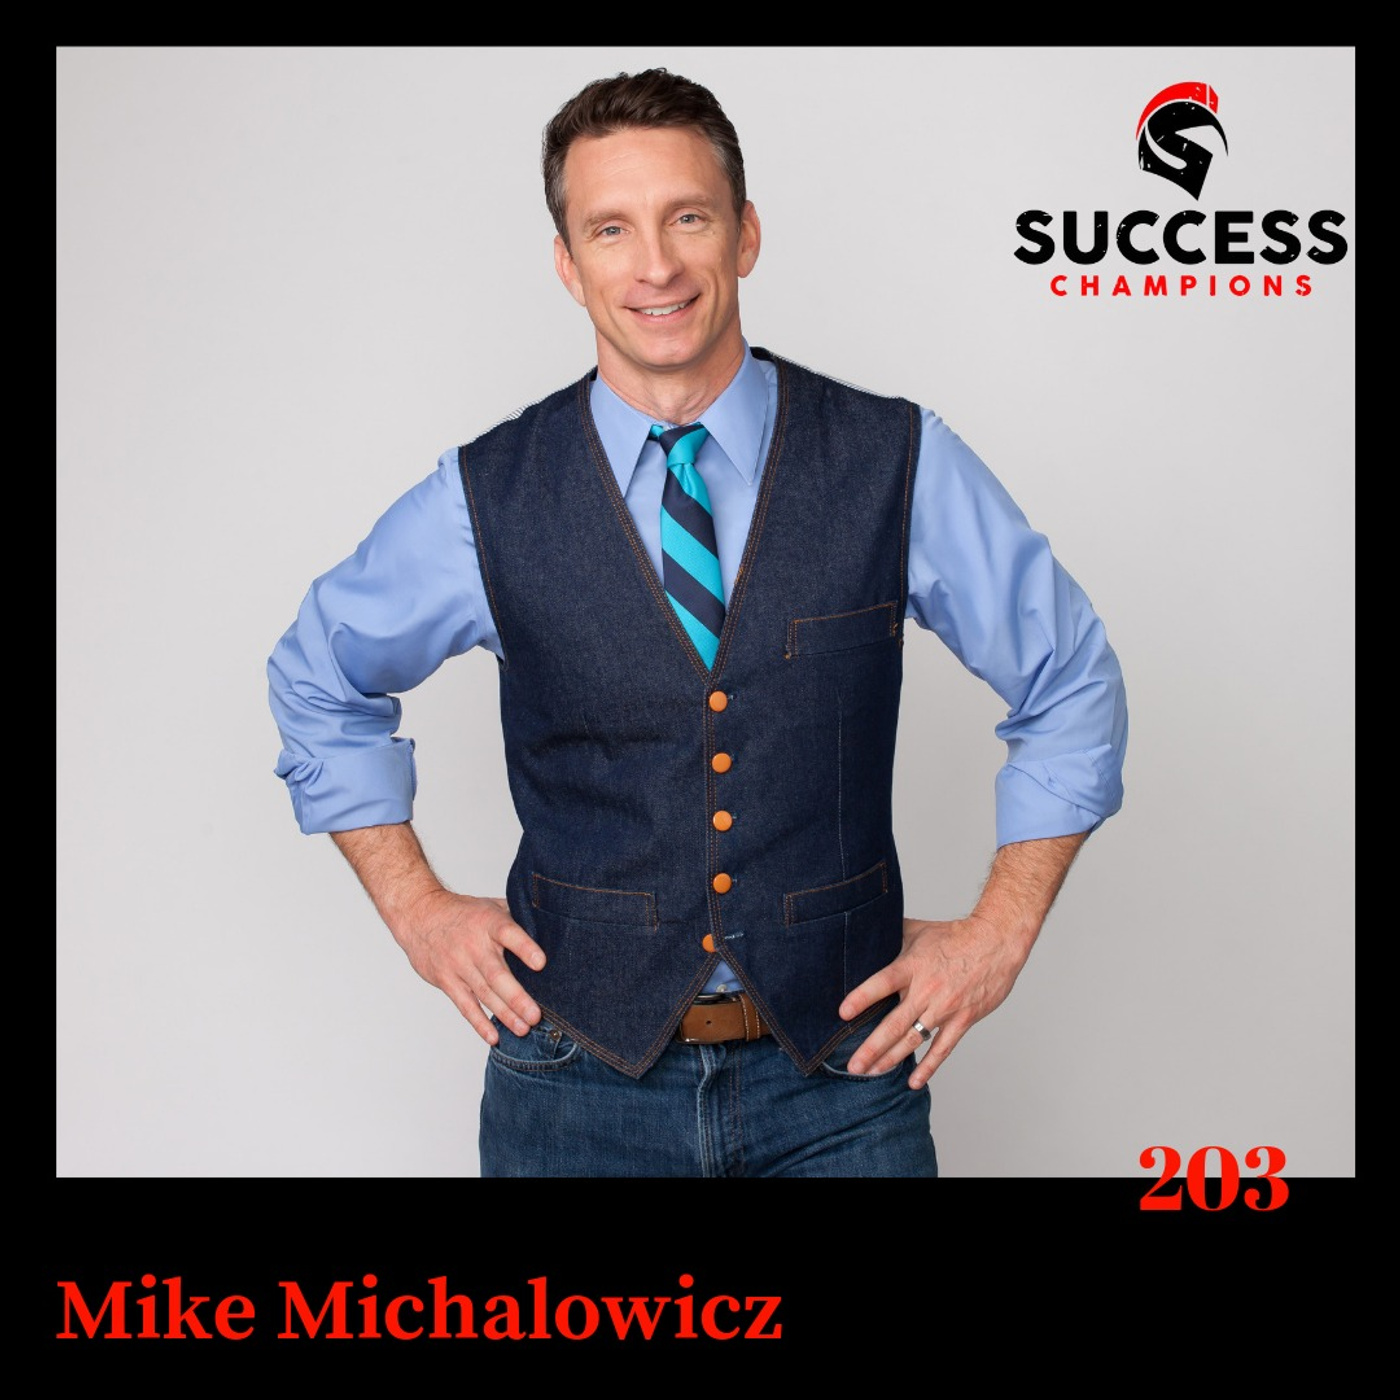 Mike Michalowicz Becoming a Shareholder of Your Entrepreneur Life